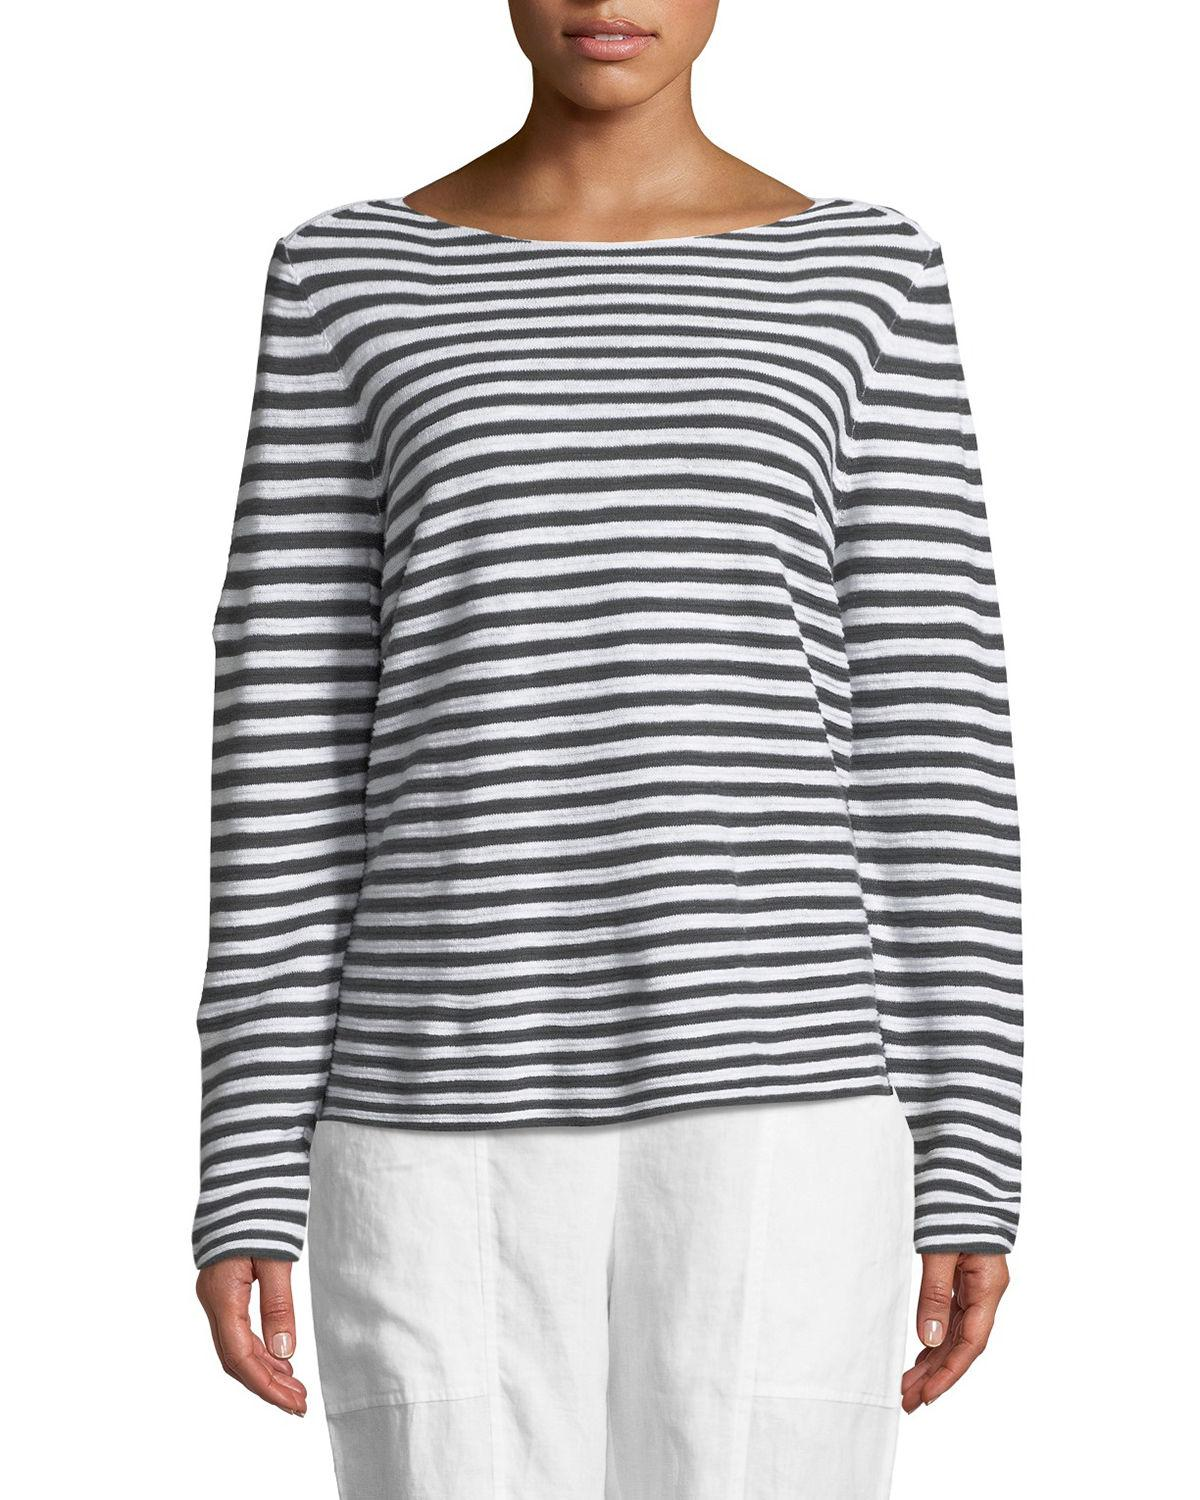 3b2ff6911 Eileen Fisher Striped Long-Sleeve Organic Linen/Cotton Sweater, Plus Size  In Graphite